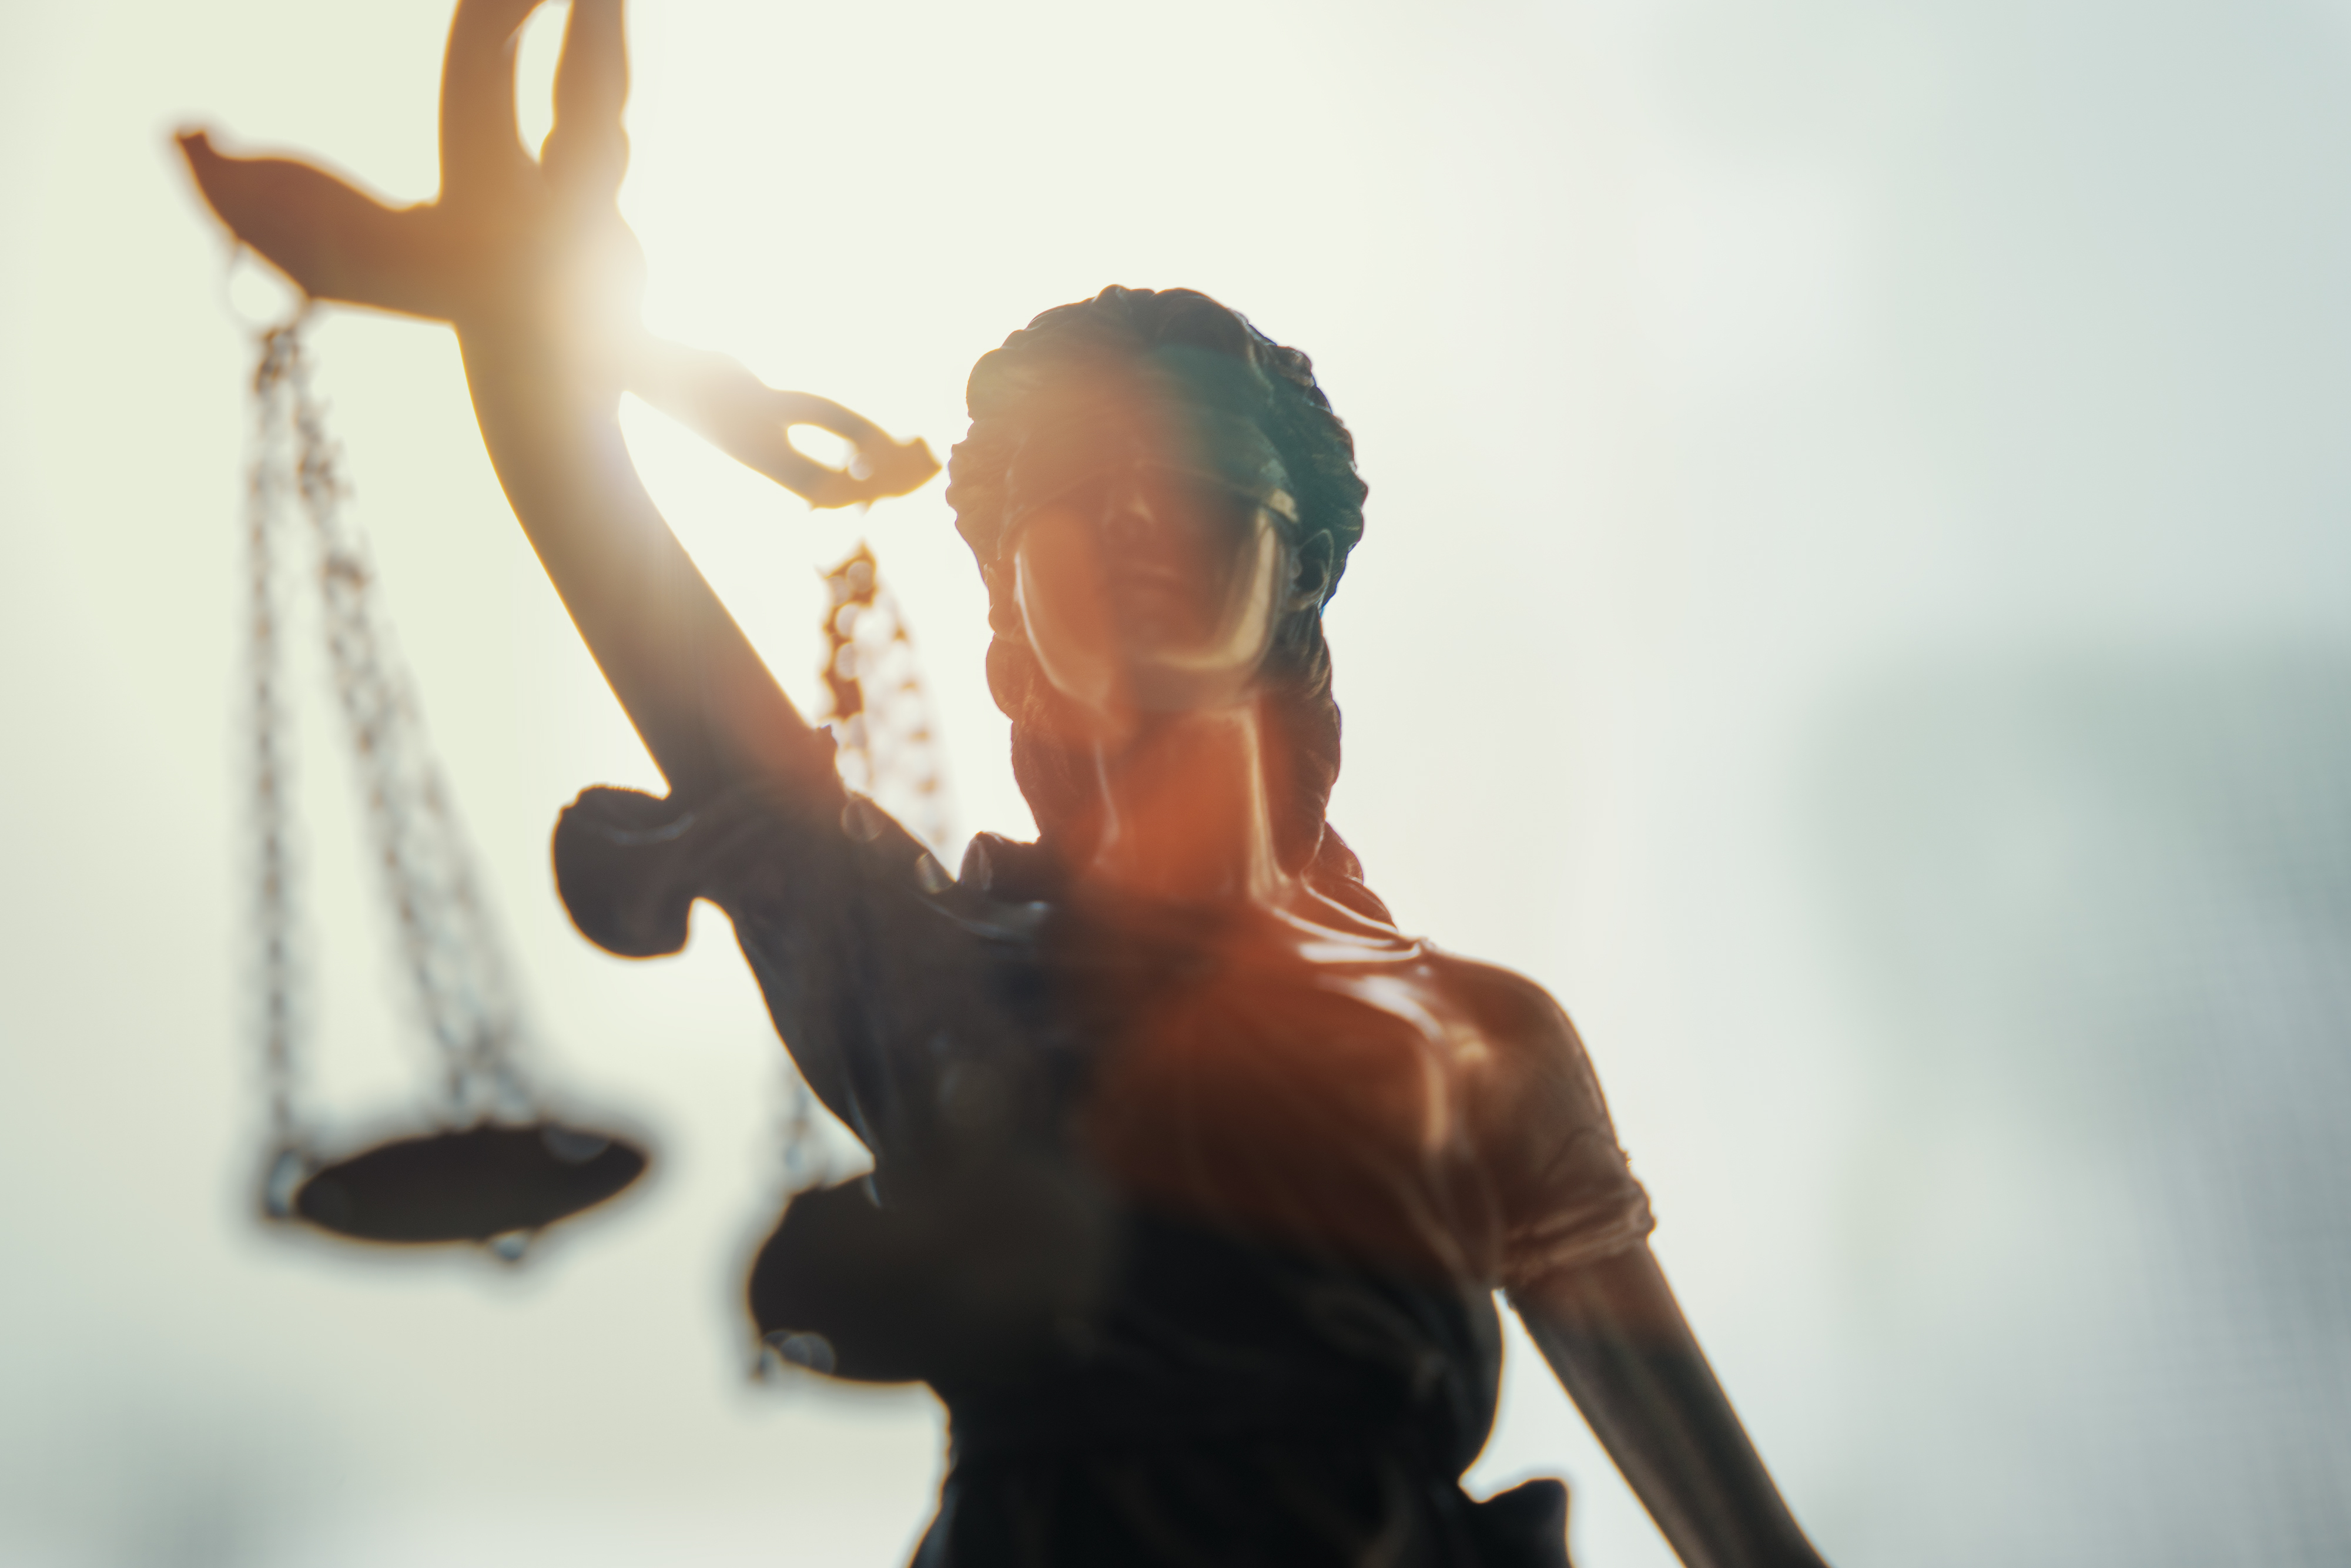 Jury Selection - What Is Voir Dire? And What Should You Expect?